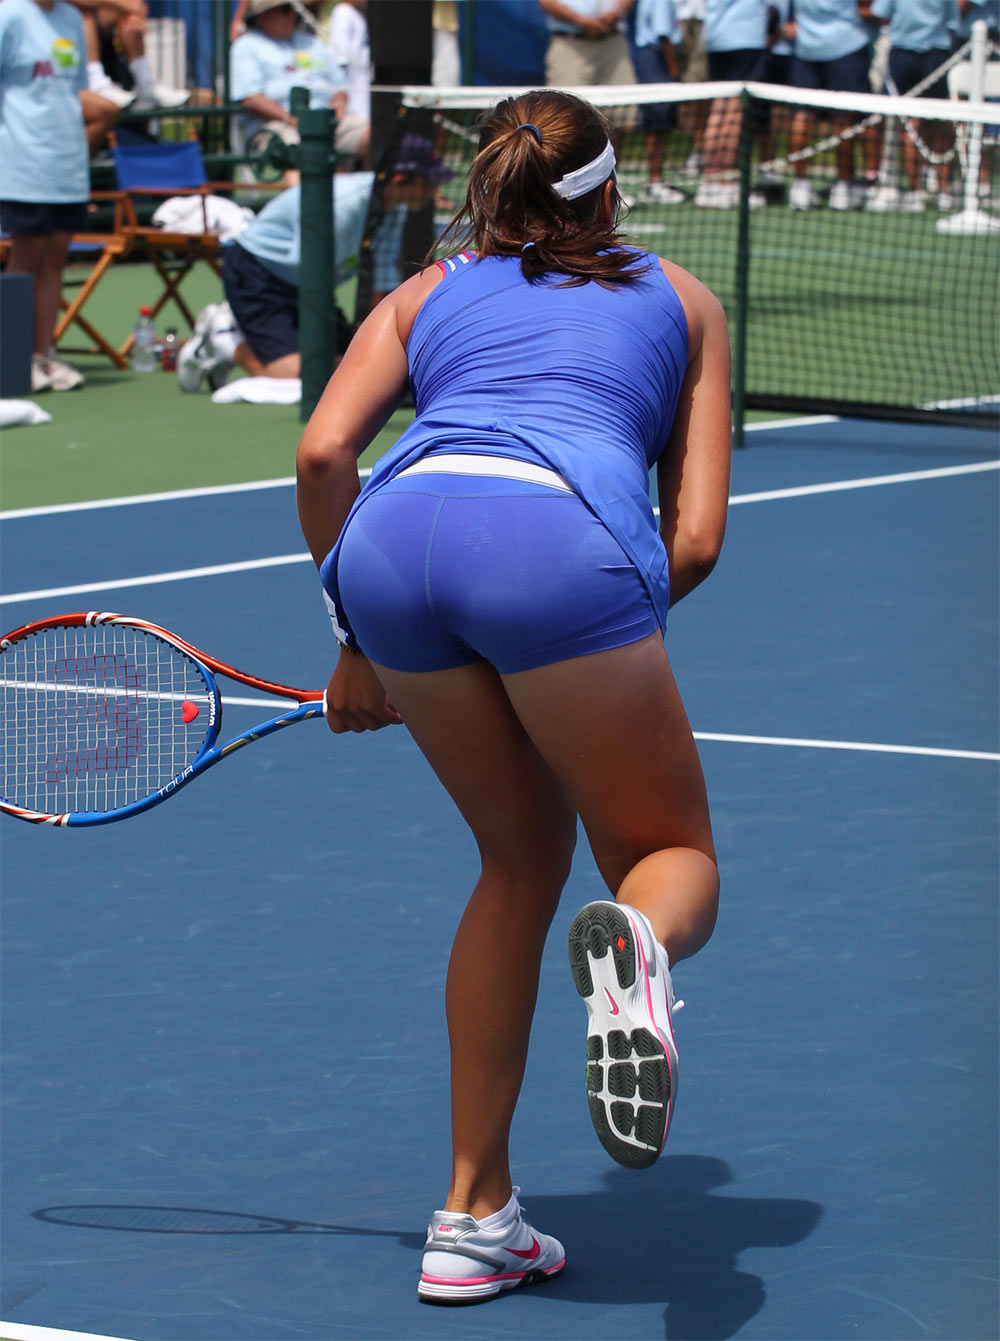 Candid Tennis Photos - Full Real Porn